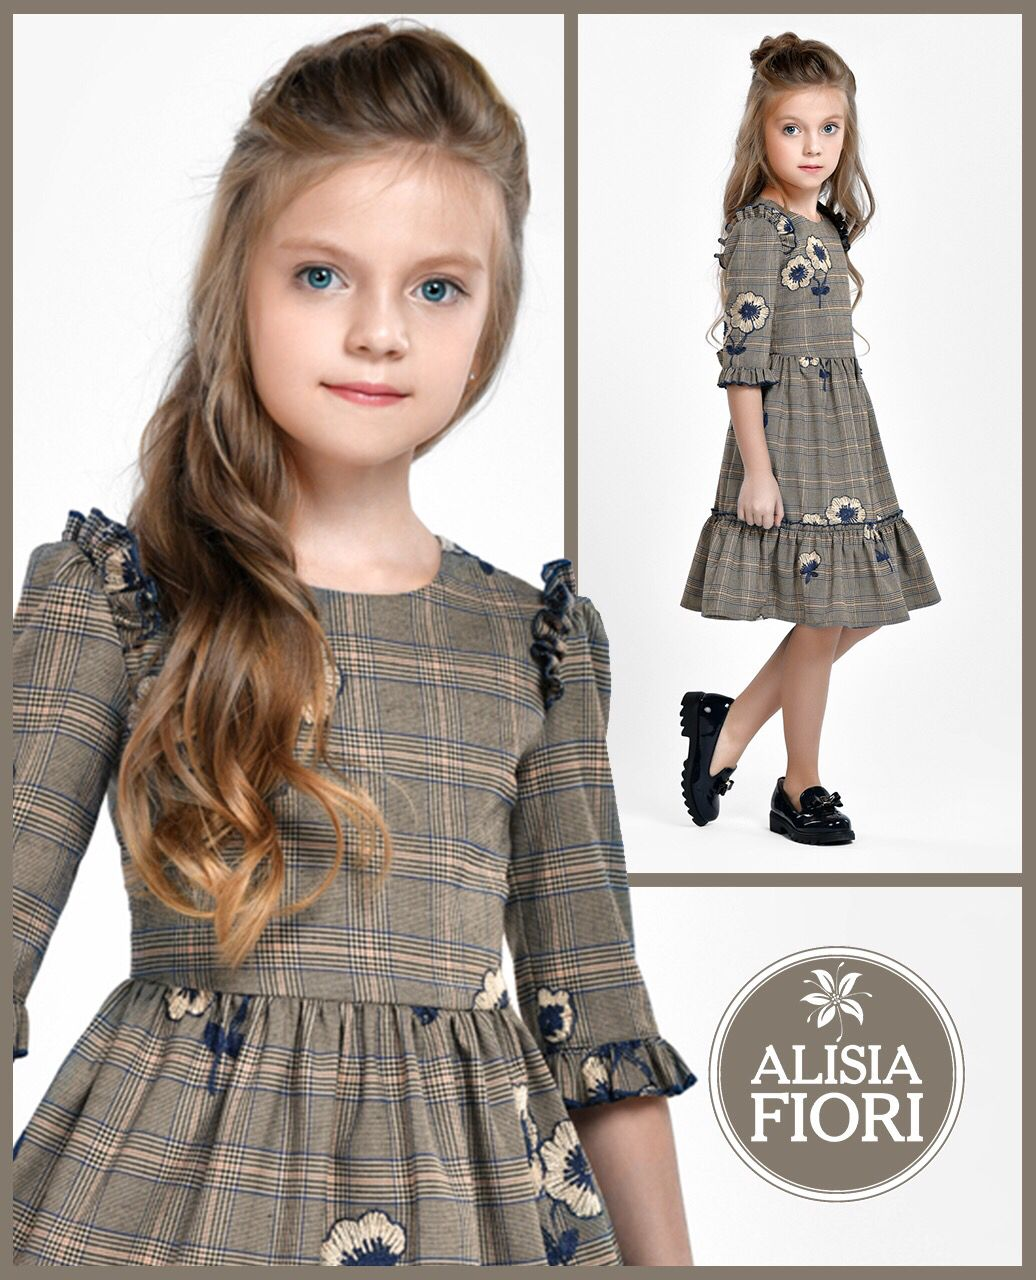 new product ee736 c7c61 Dresses and coats for girls and women. Abiti e cappotti per ...